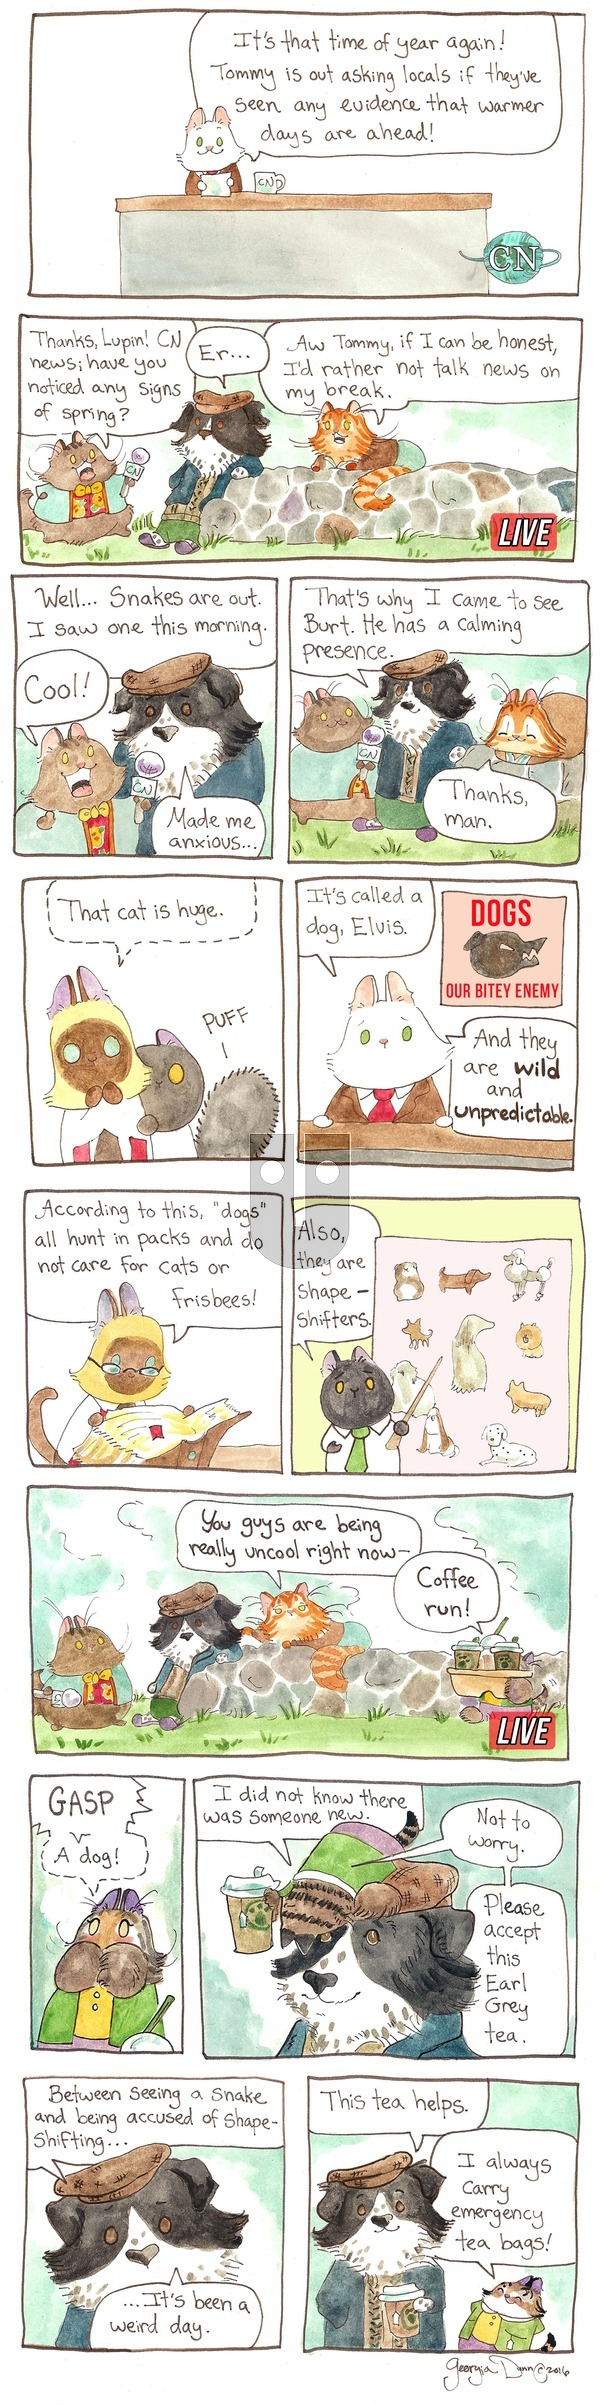 Breaking Cat News on Sunday May 15, 2016 Comic Strip